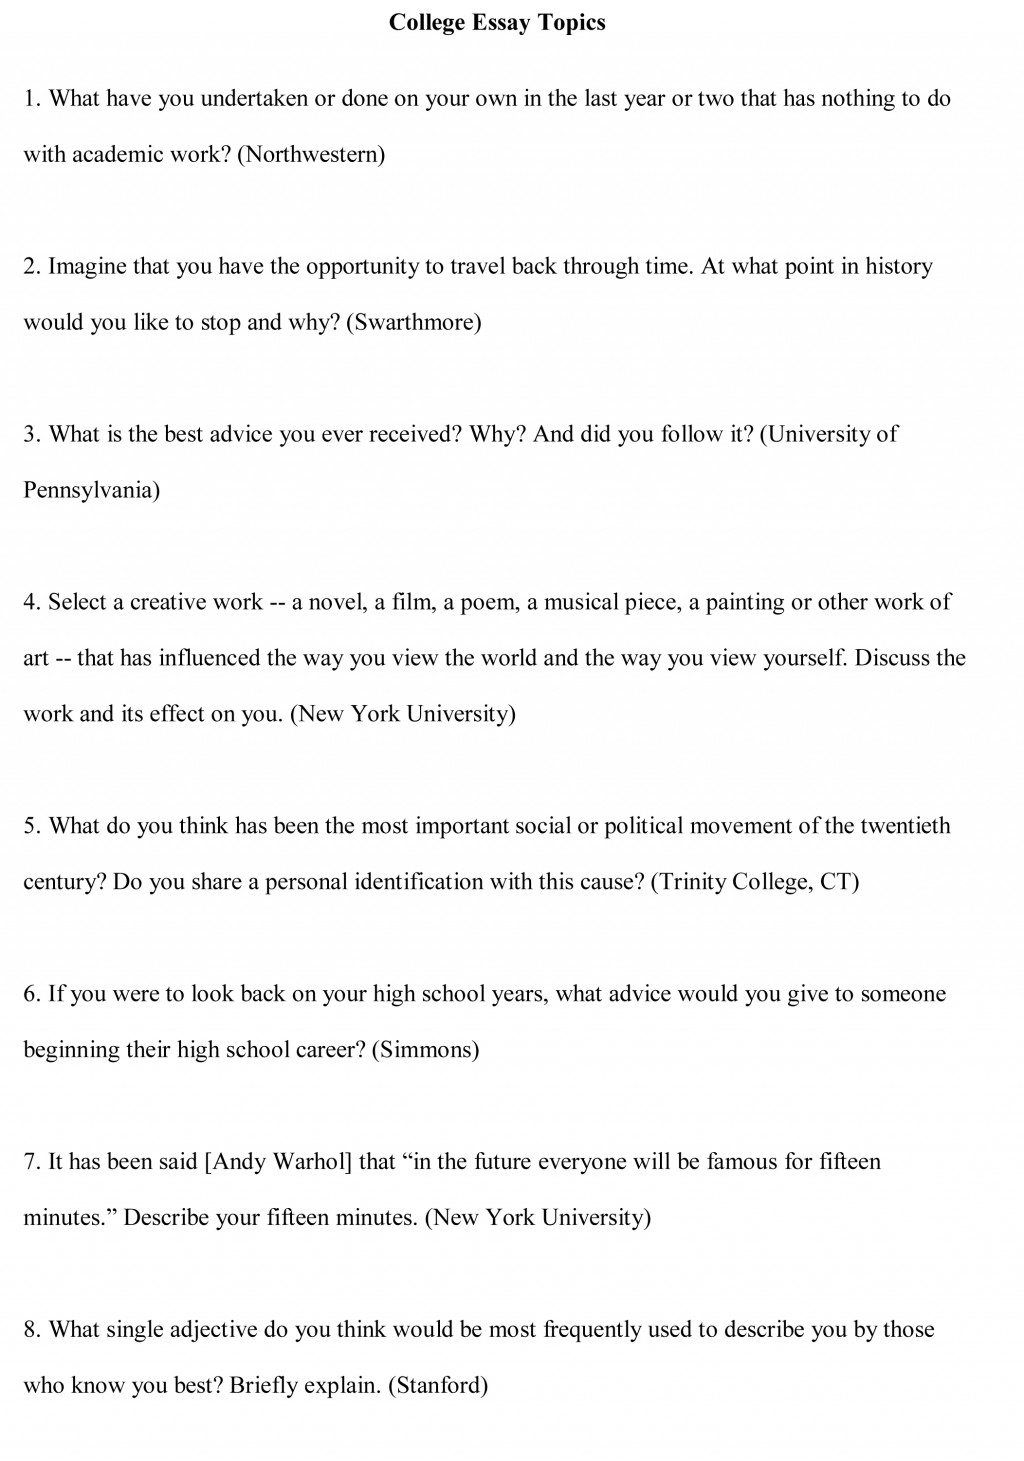 003 College Essay Topics Free Sample1 Prompts Impressive About Yourself Texas Tech Large